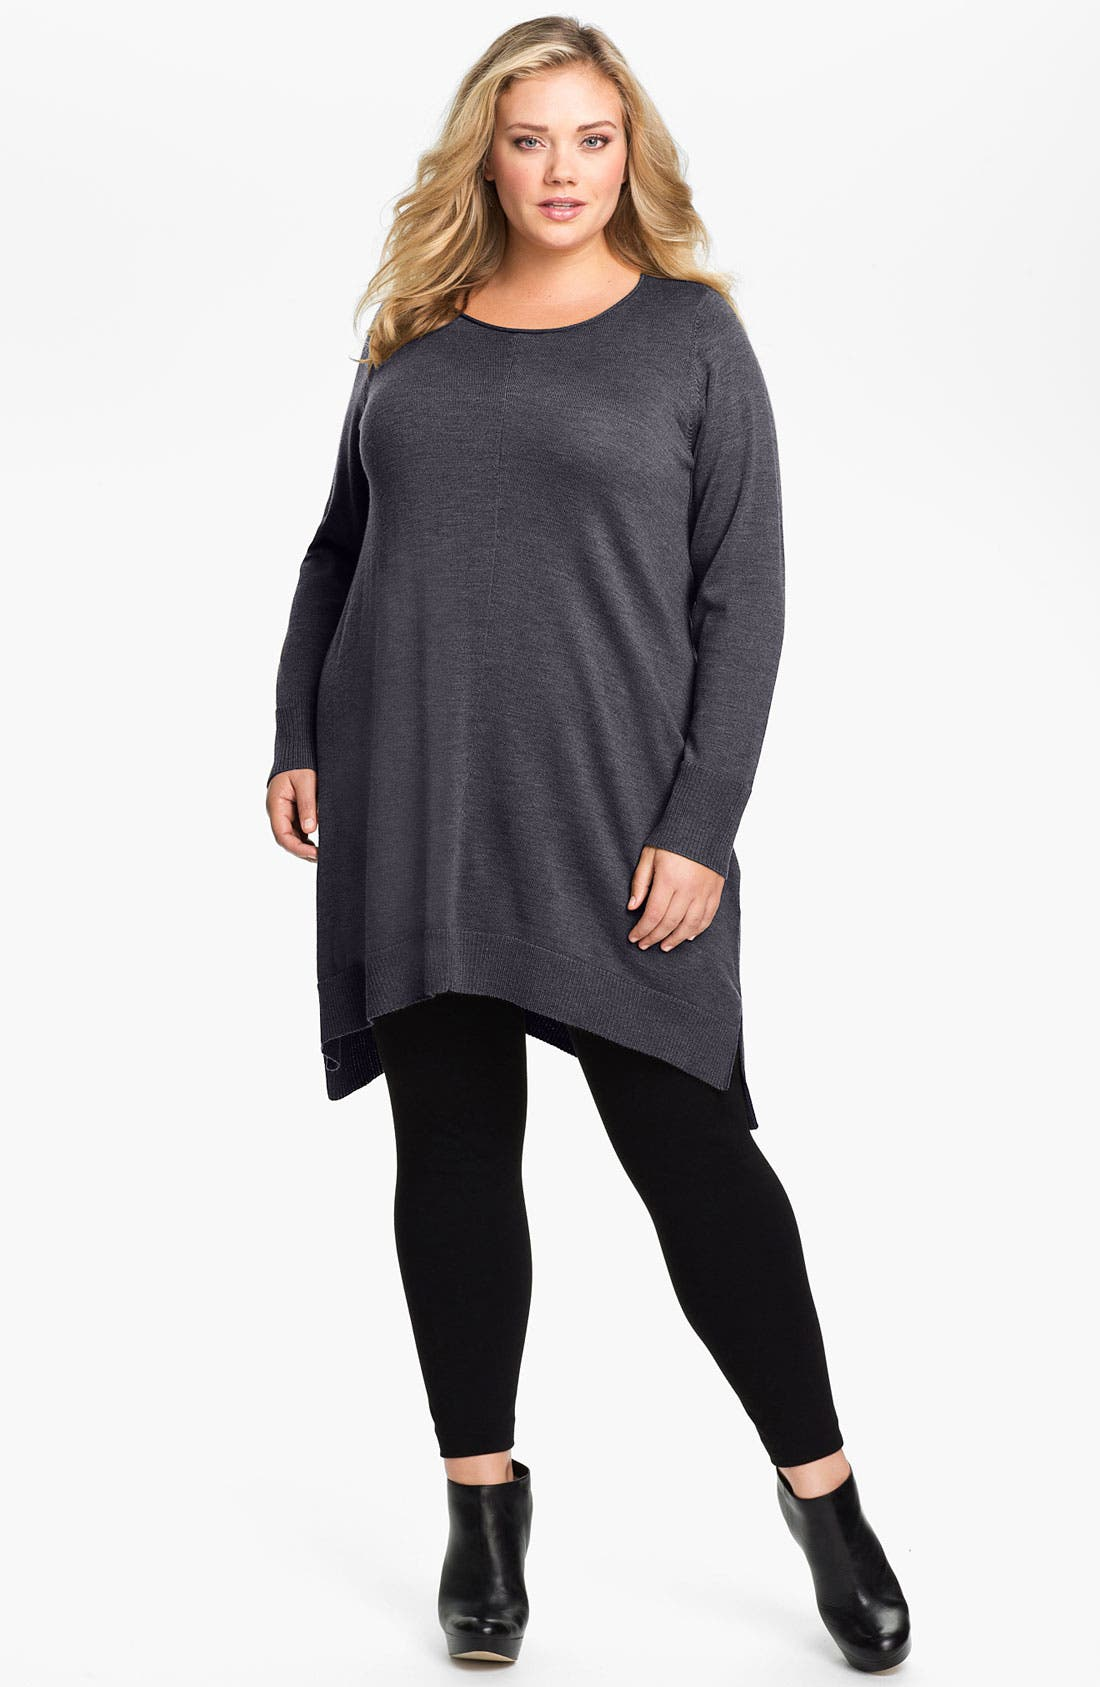 Alternate Image 1 Selected - Eileen Fisher Merino Wool Layering Dress (Plus Size)